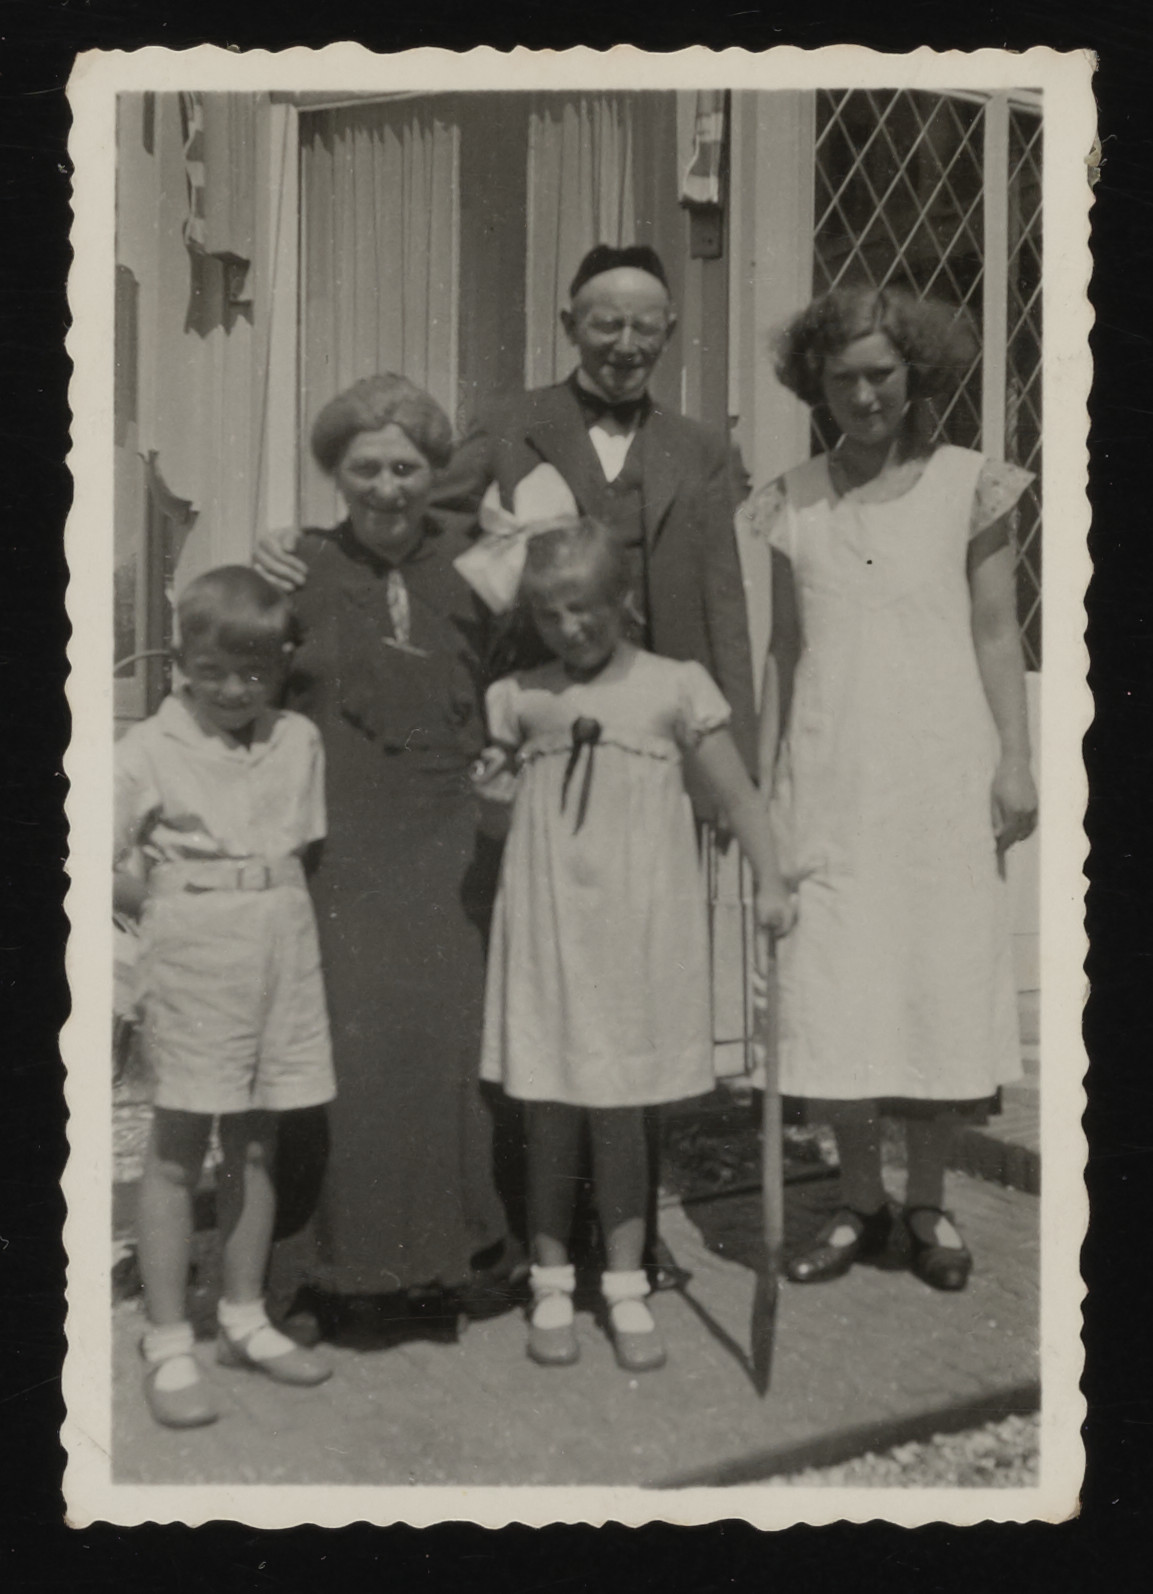 Two Jewish children pose with their grandparents outside their home in Amsterdam.  Pictured are Leo and Bertie Serphos and Levi and Grietje Koppels. The woman on the right was assisting the Koppels.